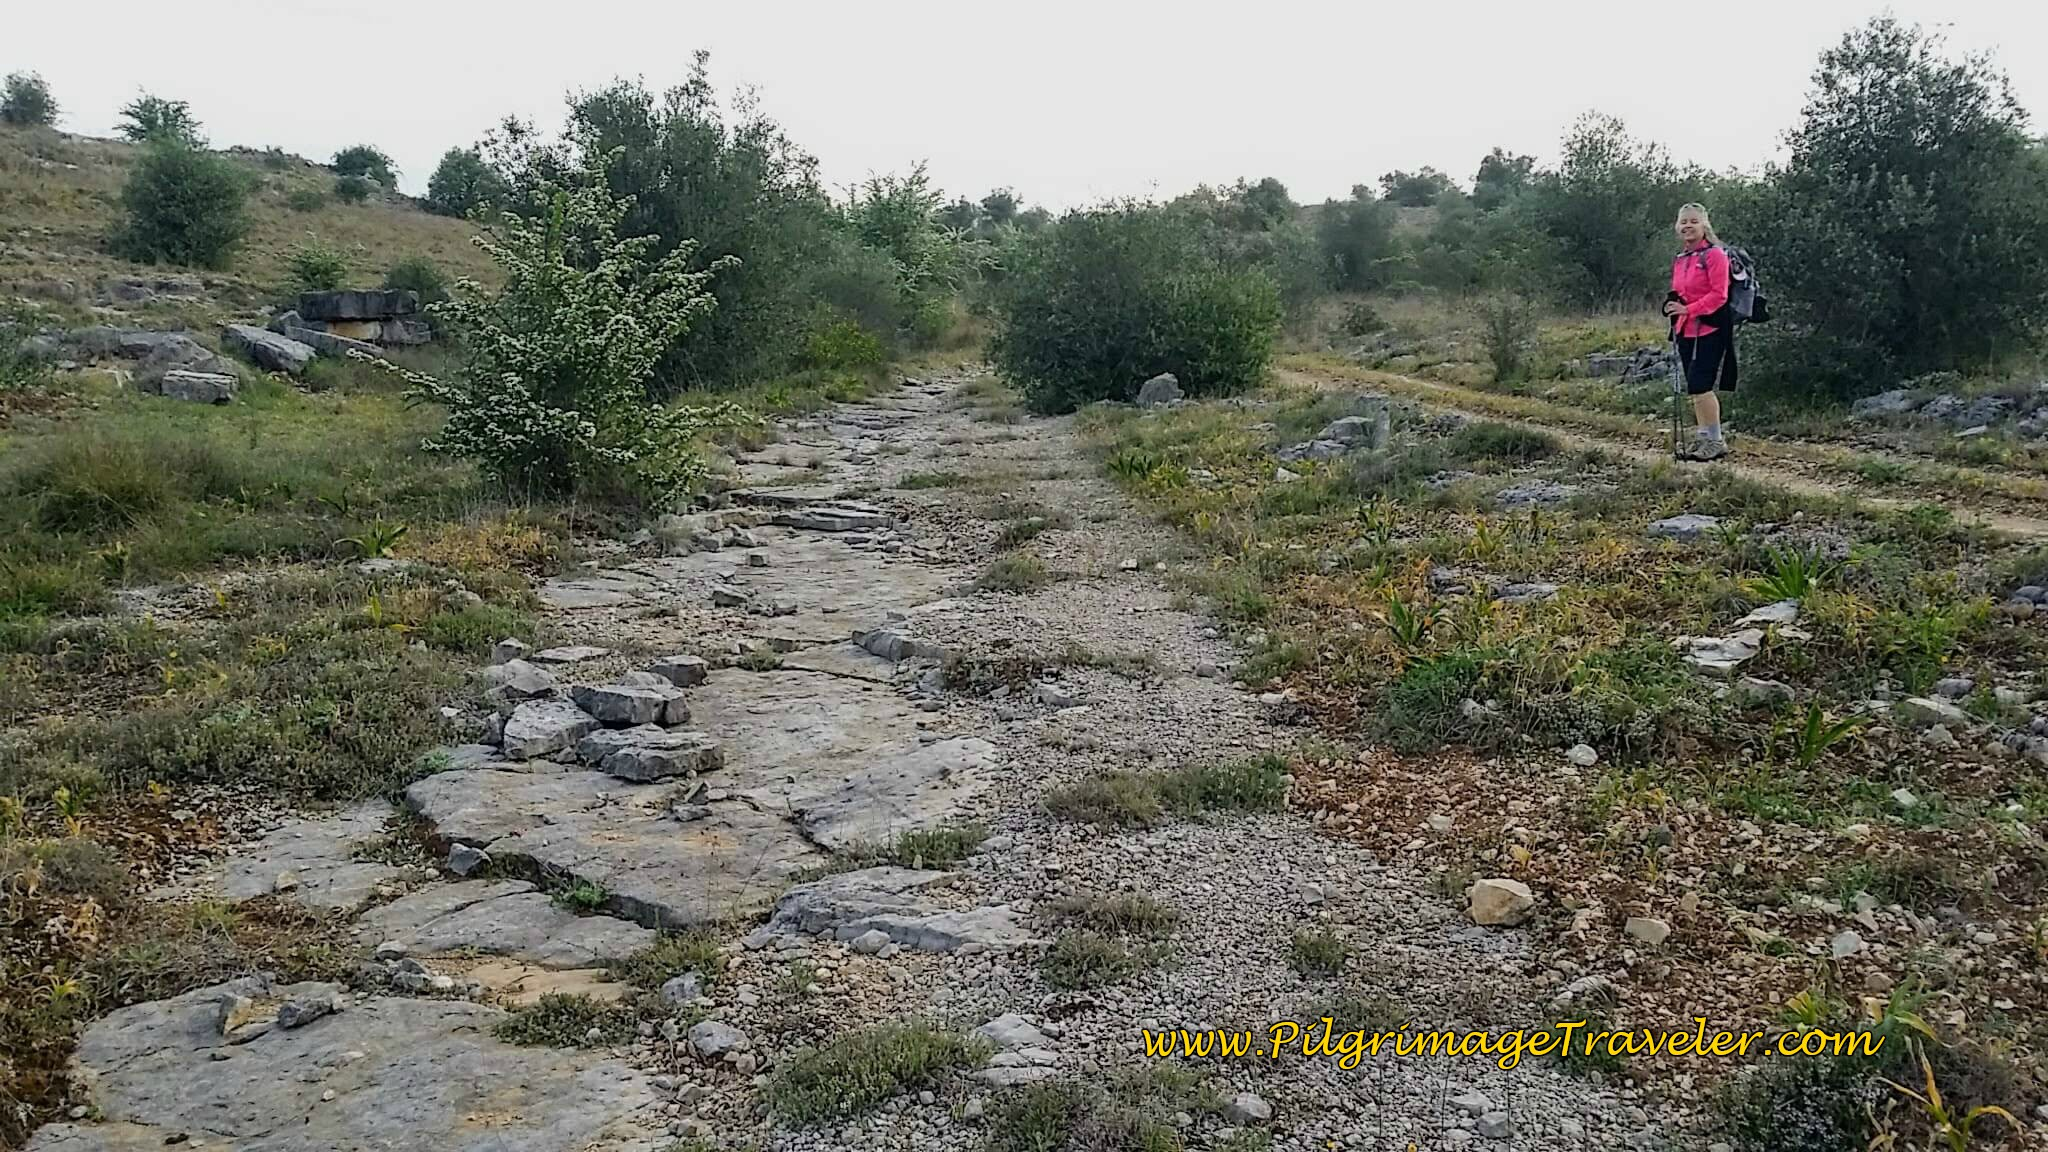 Elle by an Ancient, Possible Roman Road